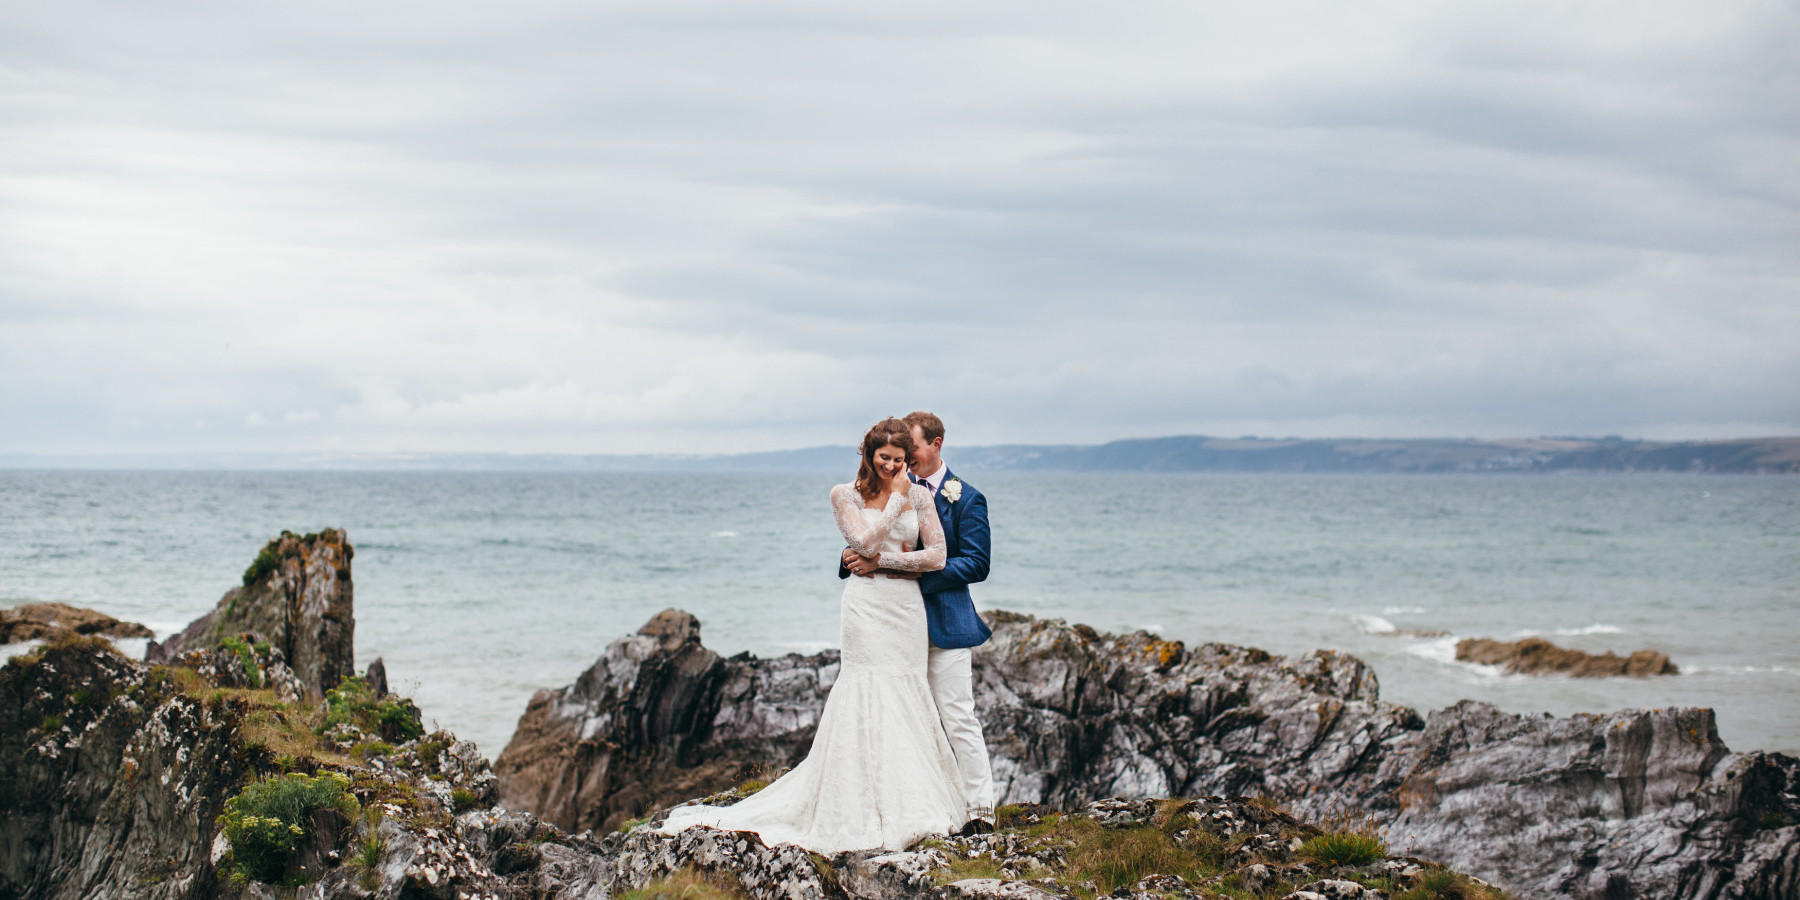 Glam Polhawn Fort Wedding in Cornwall, by Cornwall wedding photographer, Green Antlers Photography